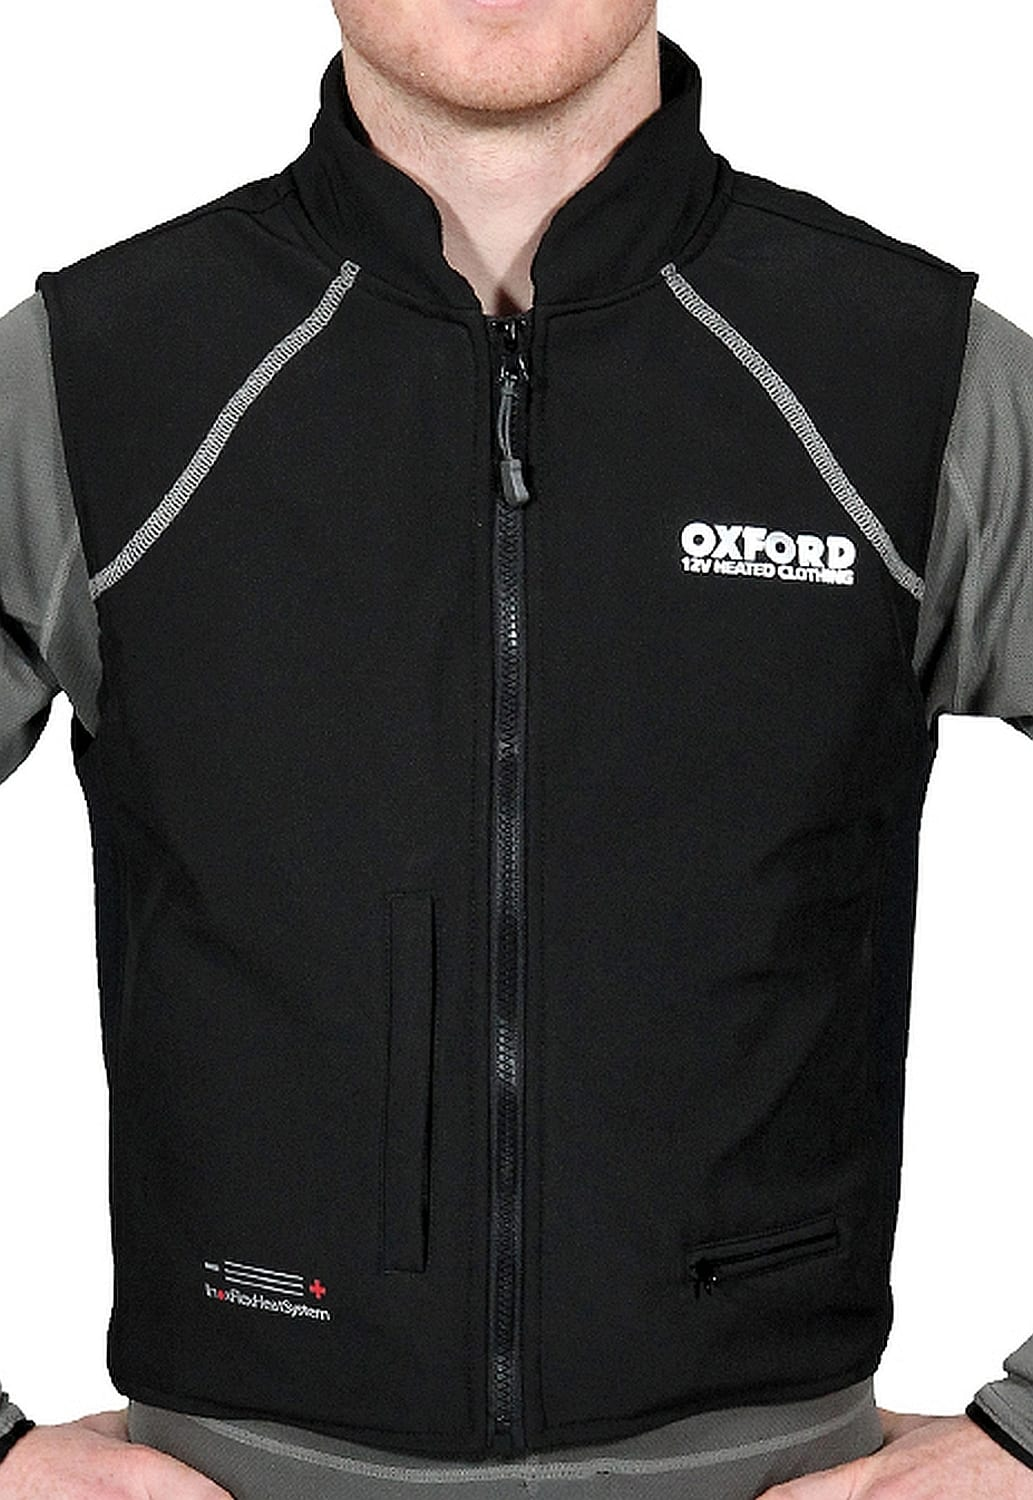 052-winter-riding-htdclthng-vest-annotated-pic-cutout